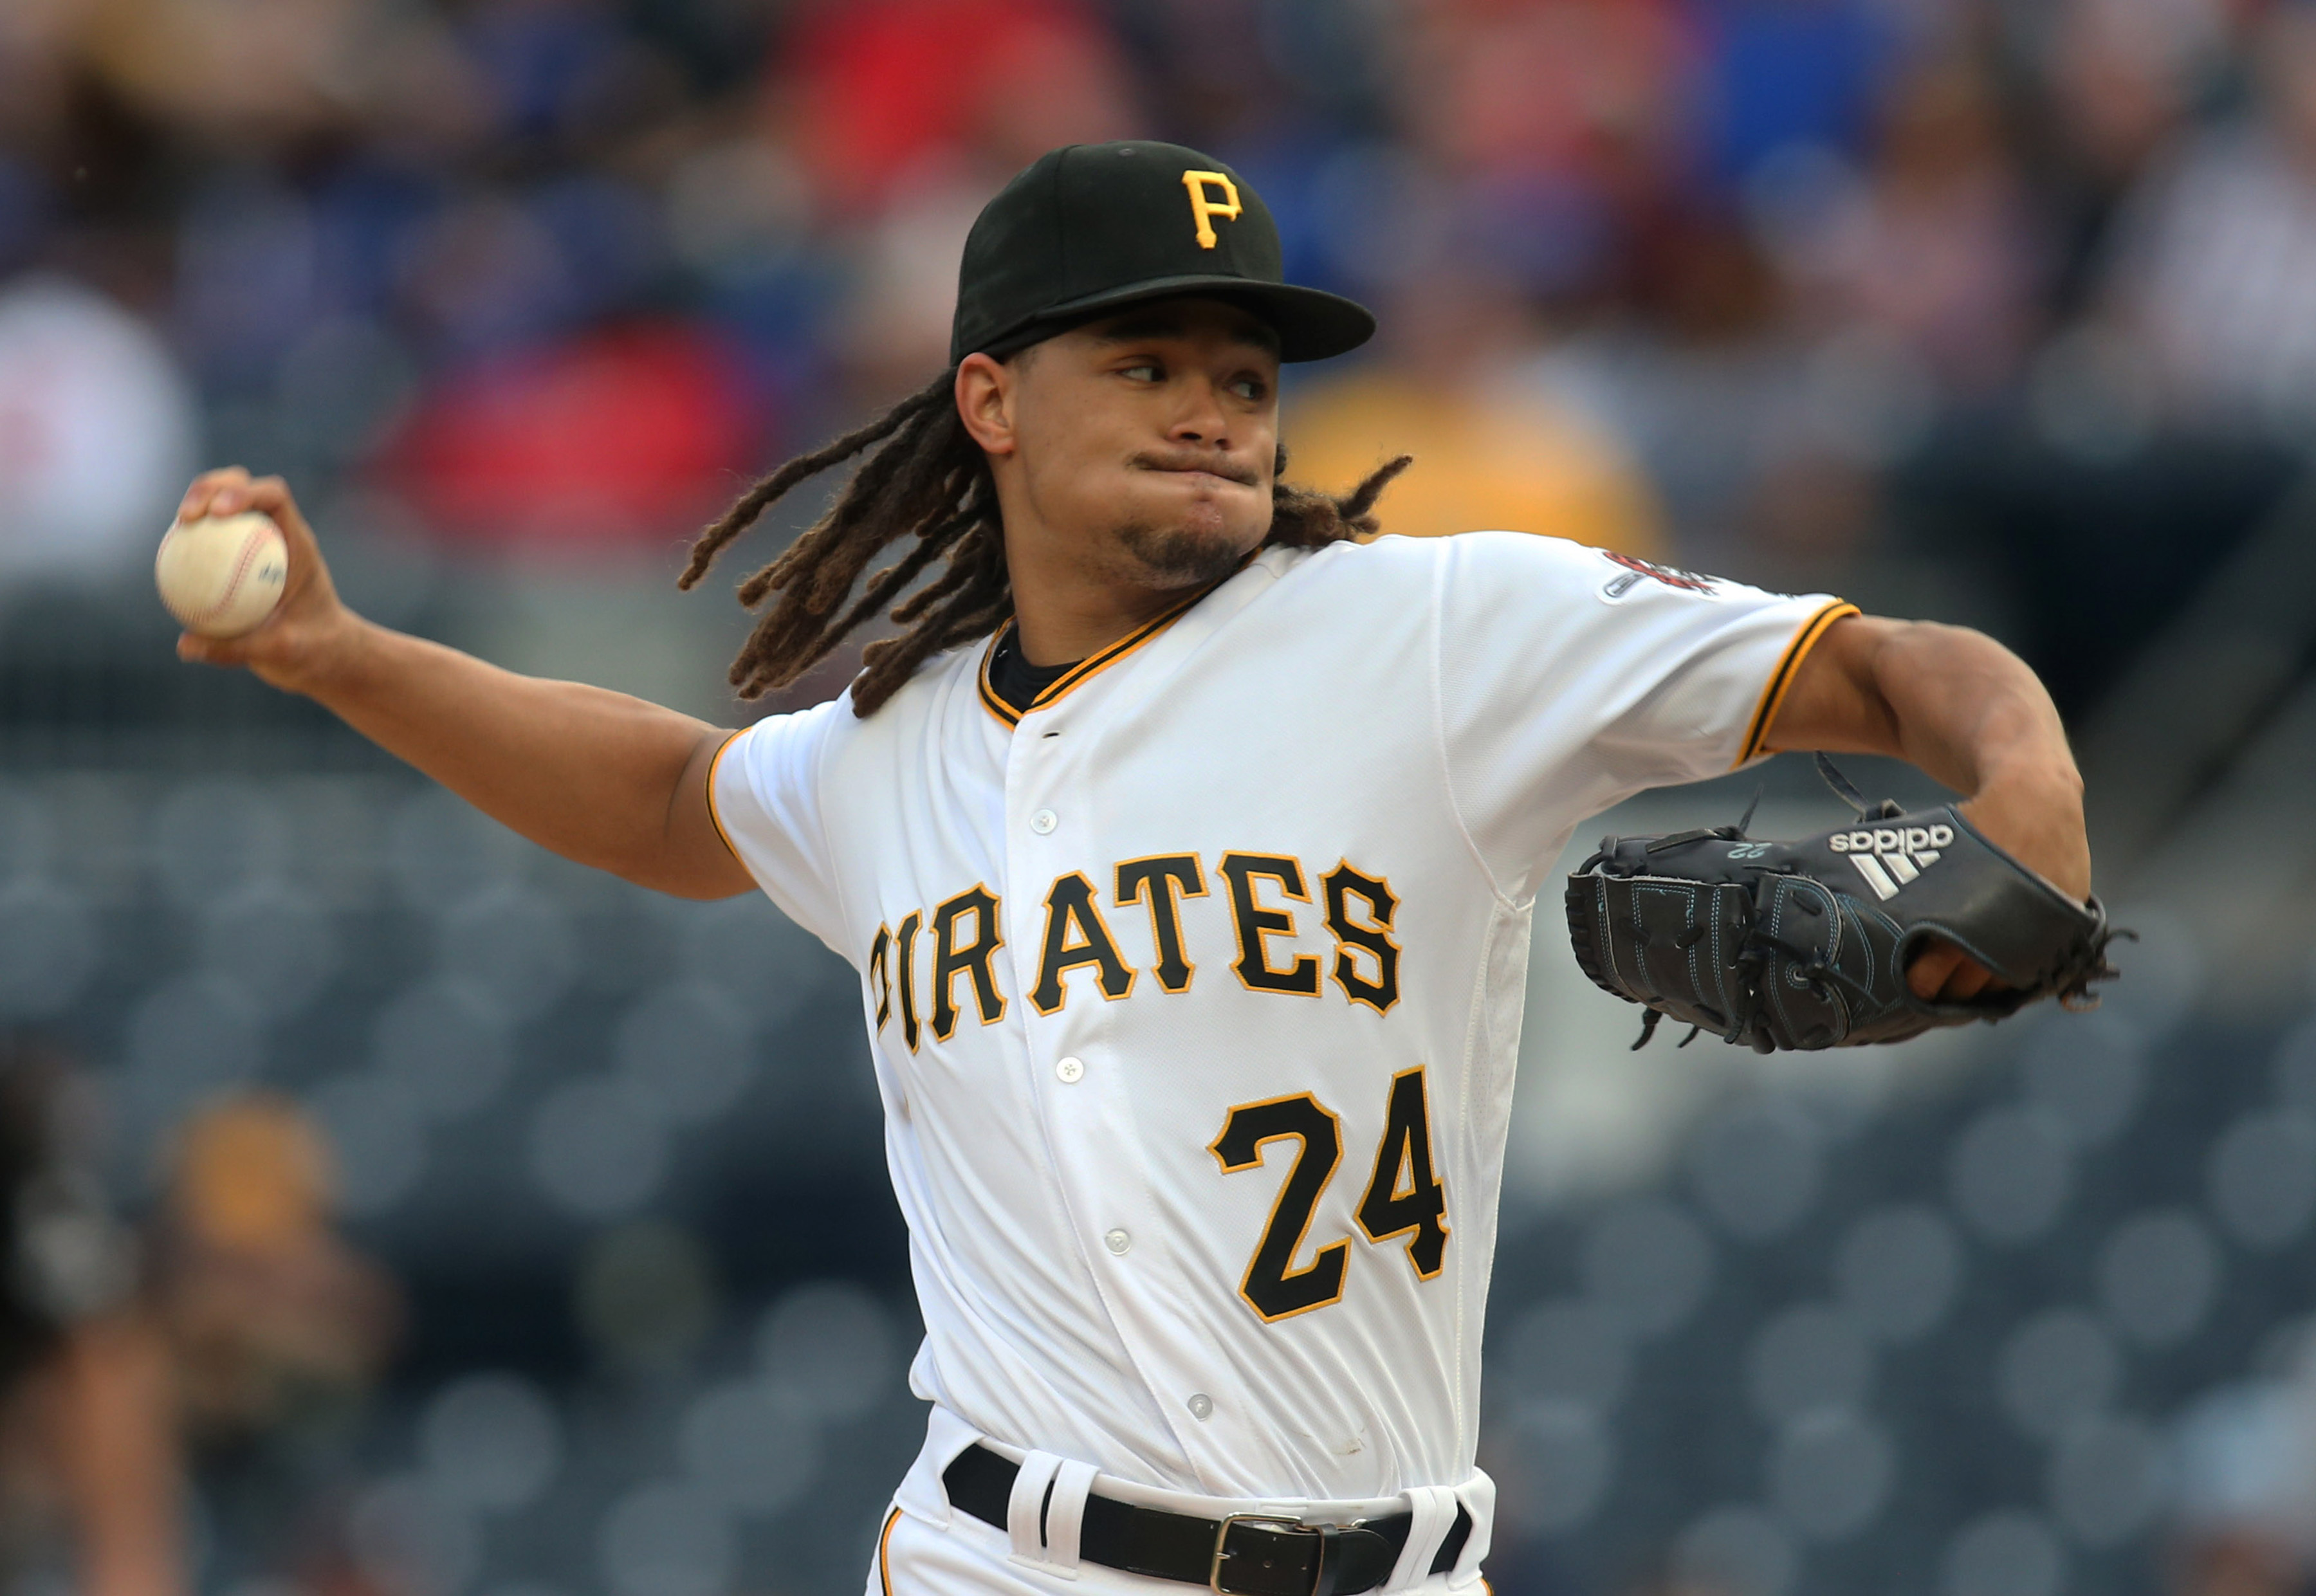 It's not too early to worry about Chris Archer